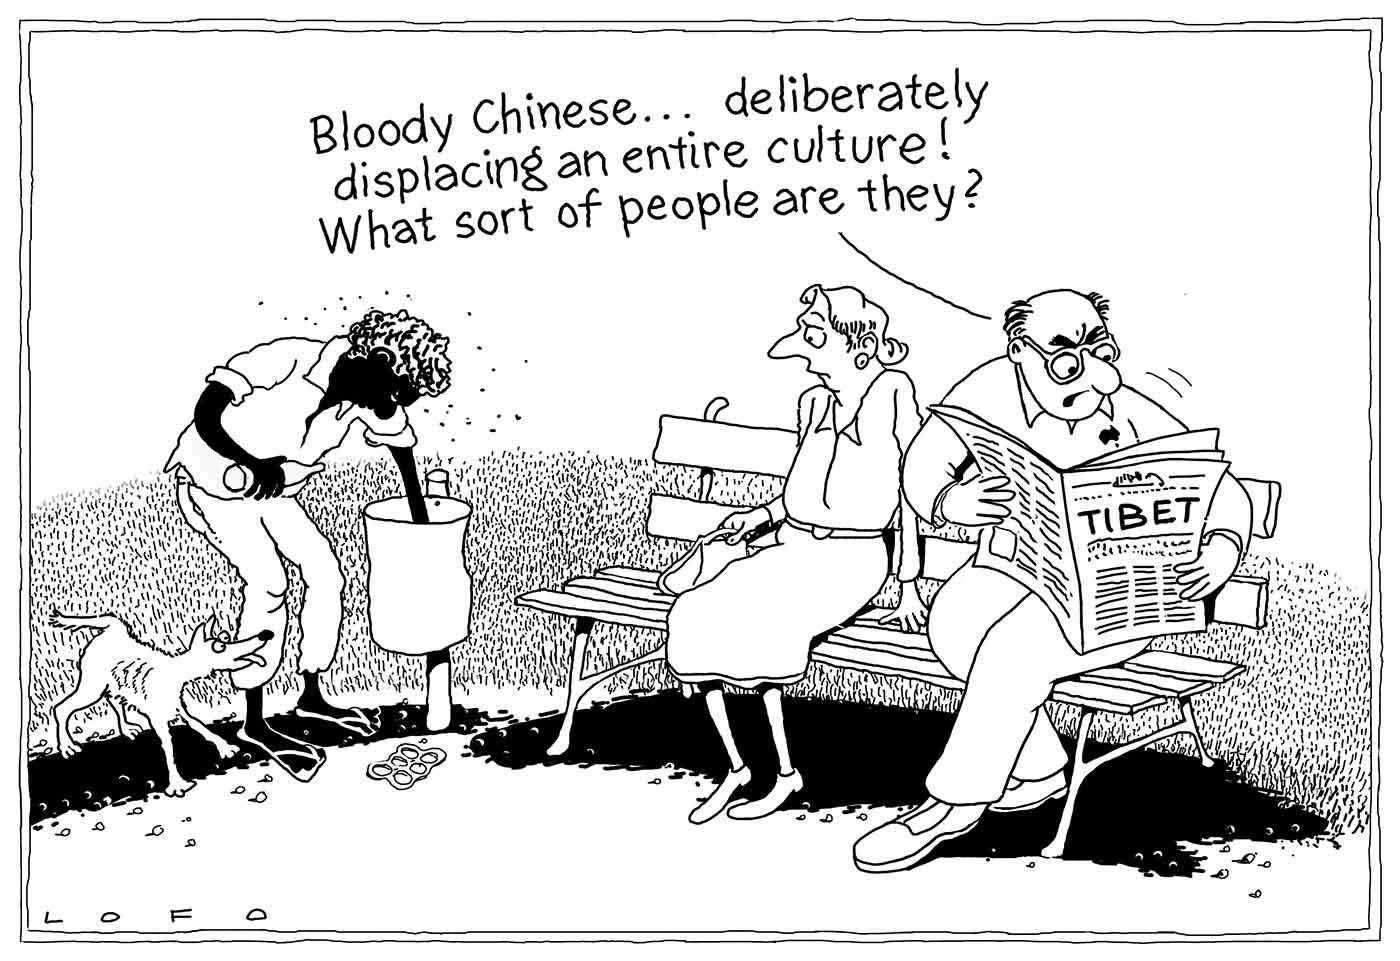 A black and white cartoon depicting an Indigenous man reaching into a rubbish bin and a non-Indigenous woman and man sitting on a park bench. The man sitting on the bench is reading a newspaper which has the word 'Tibet' on the front page and saying 'Bloody Chinese ... deliberately displacing an entire culture! What sort of people are they?' The woman is looking with concern at the Indigenous man who holds a bottle in his right hand, is surrounded by a cloud of flies and has a skinny dog near his right foot. - click to view larger image